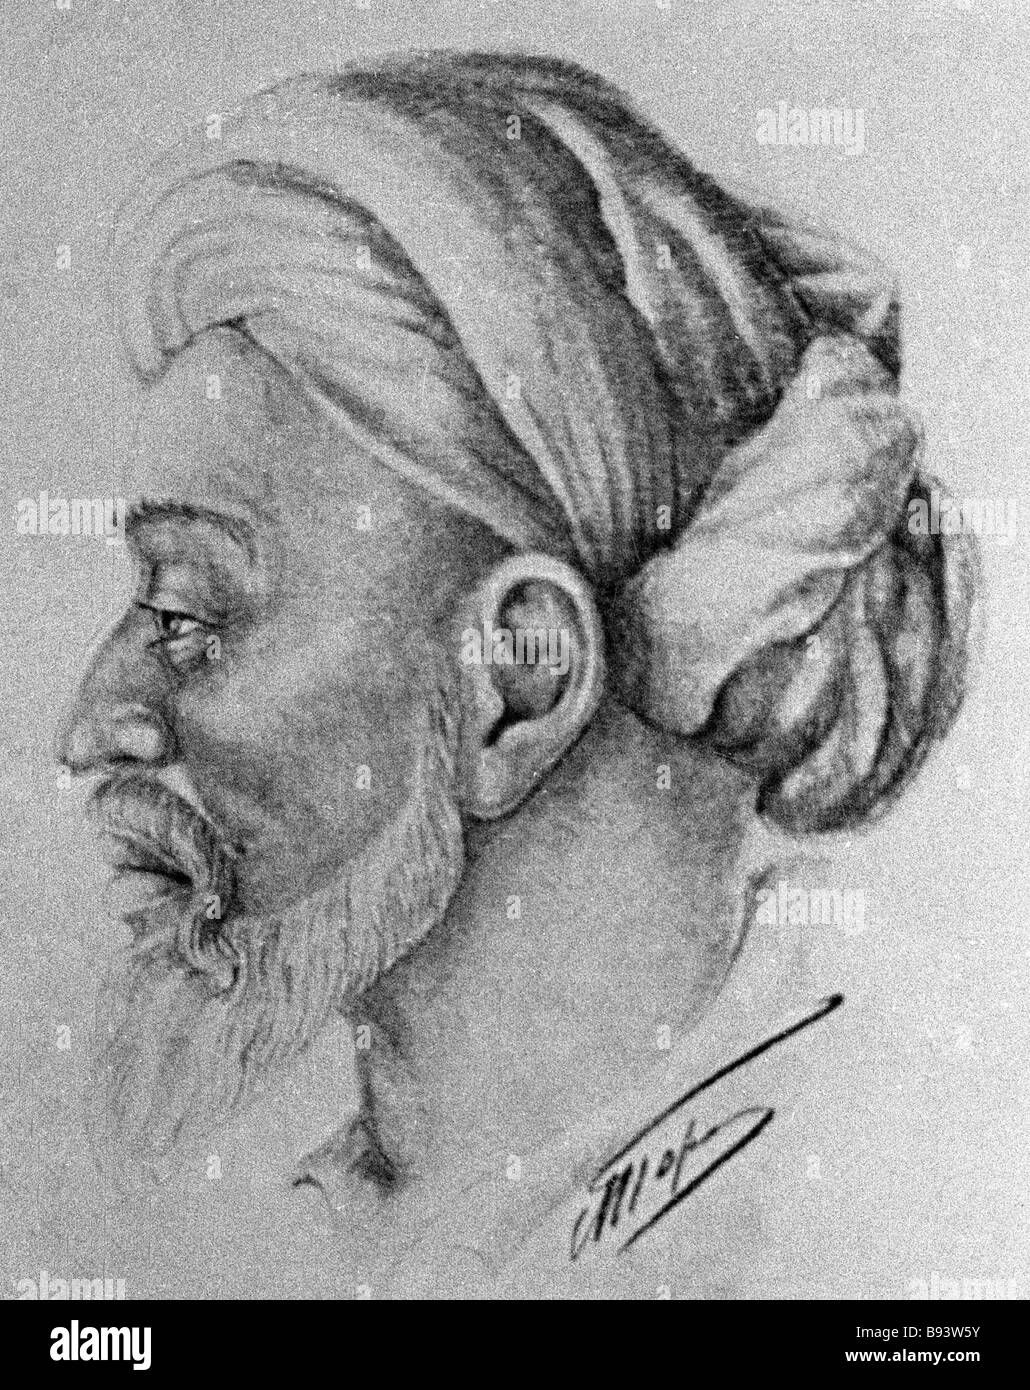 Portrait of Oriental scholar and physician Avicenna Reconstructed from skull by Academician Vasili Ternovski and - Stock Image